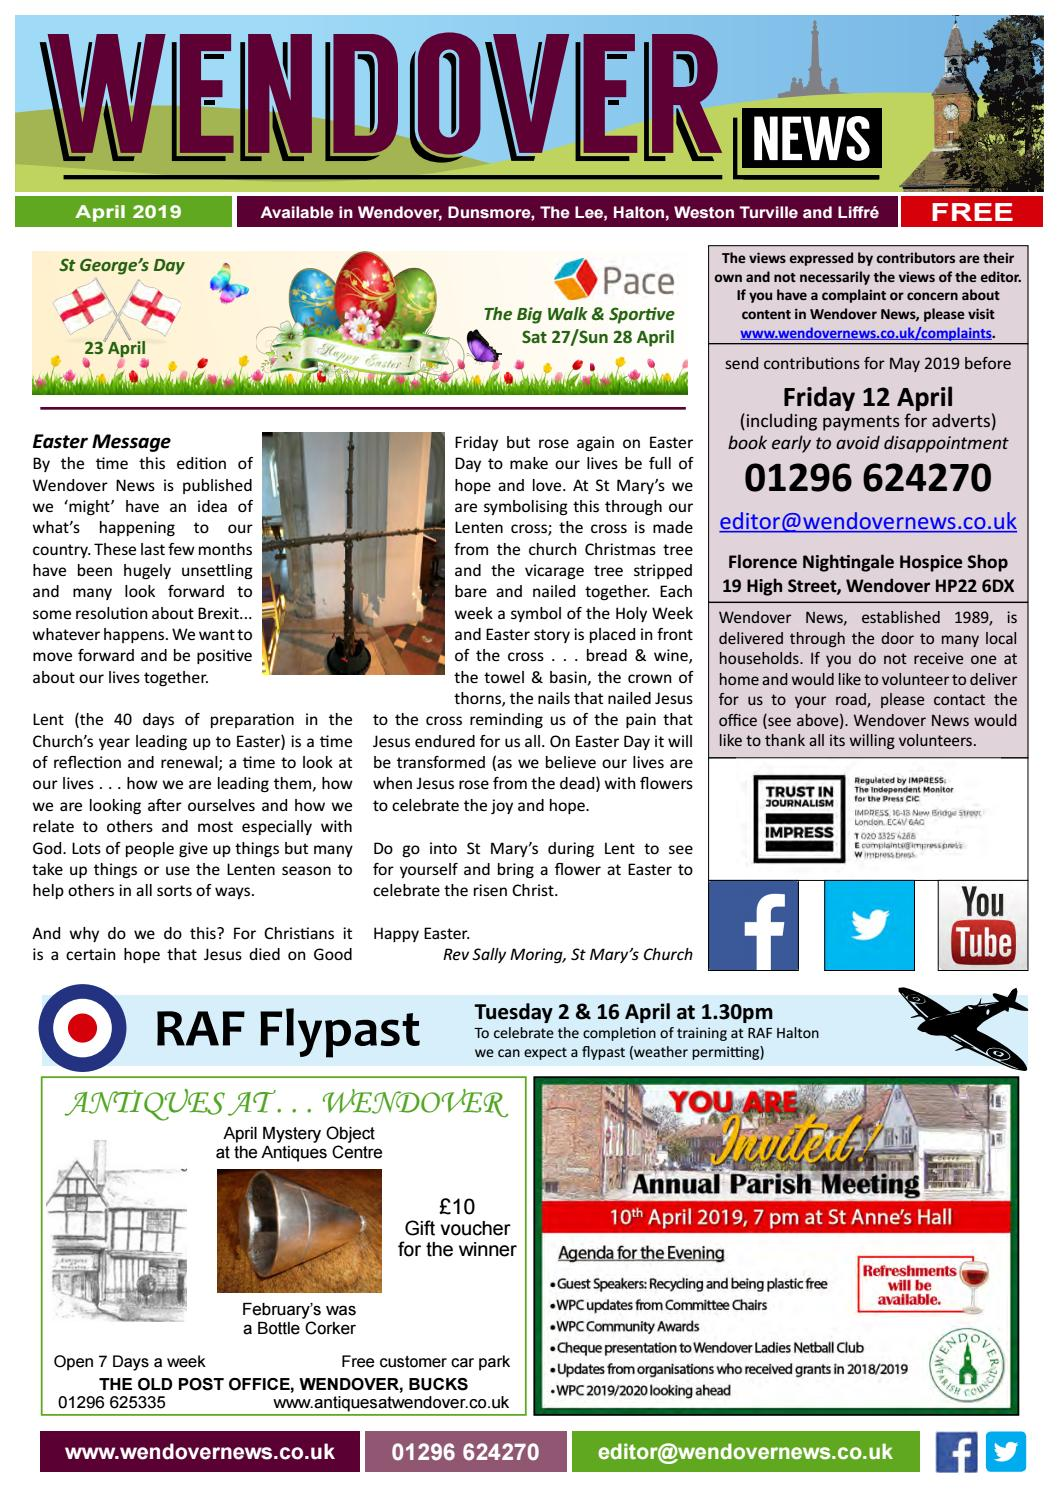 d9e37f4e Wendover News April 2019 by Wendover News - issuu